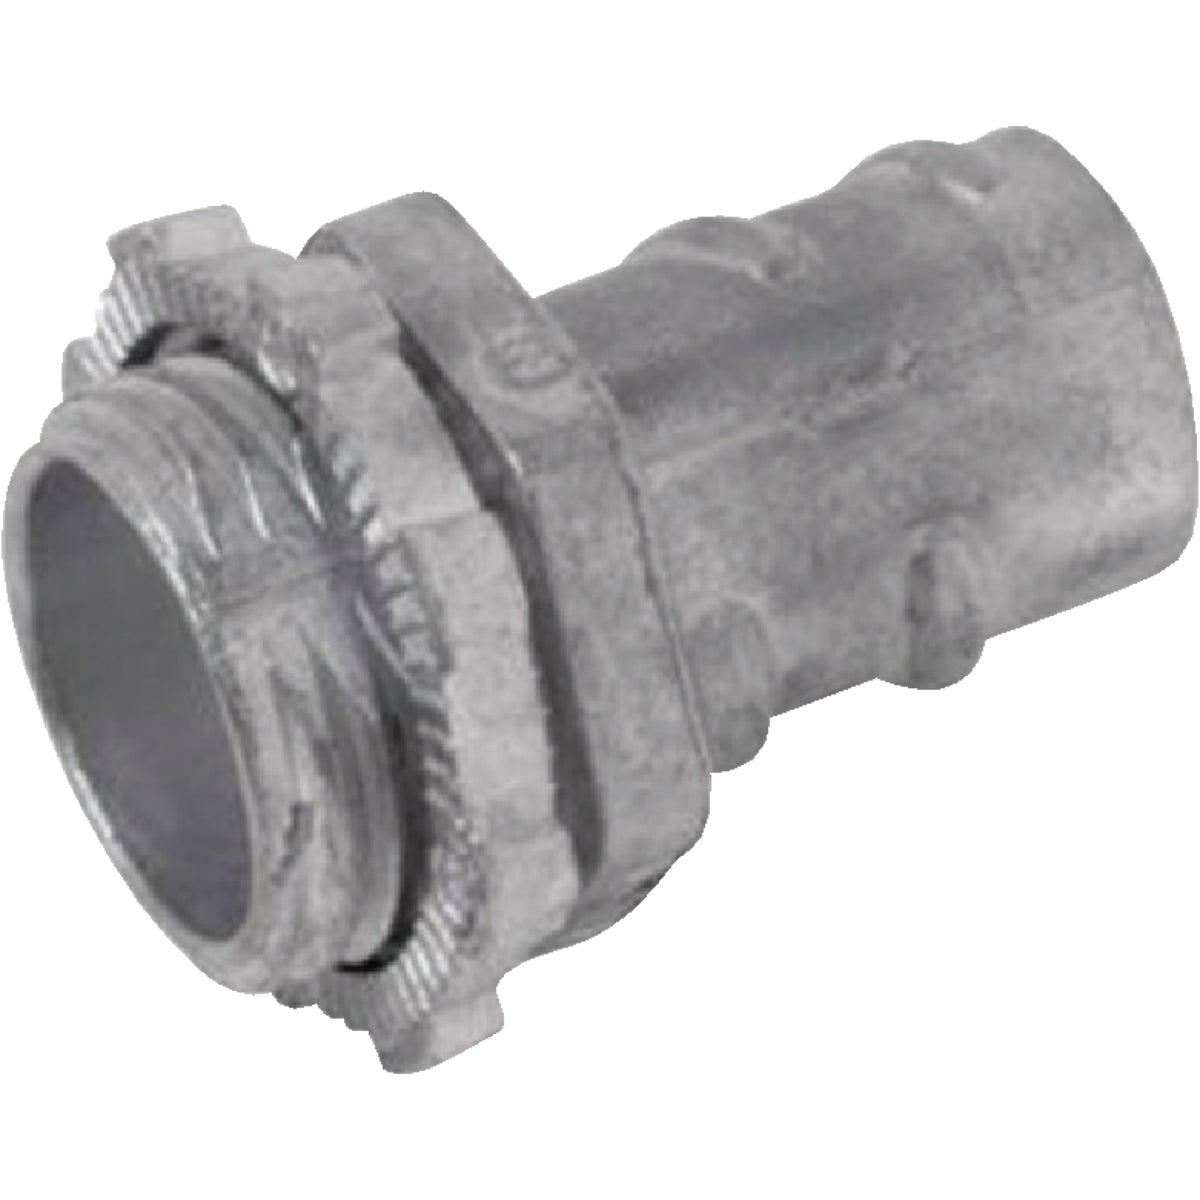 "1/2"" FLEX CONNECTOR - XC2411 by Thomas & Betts"